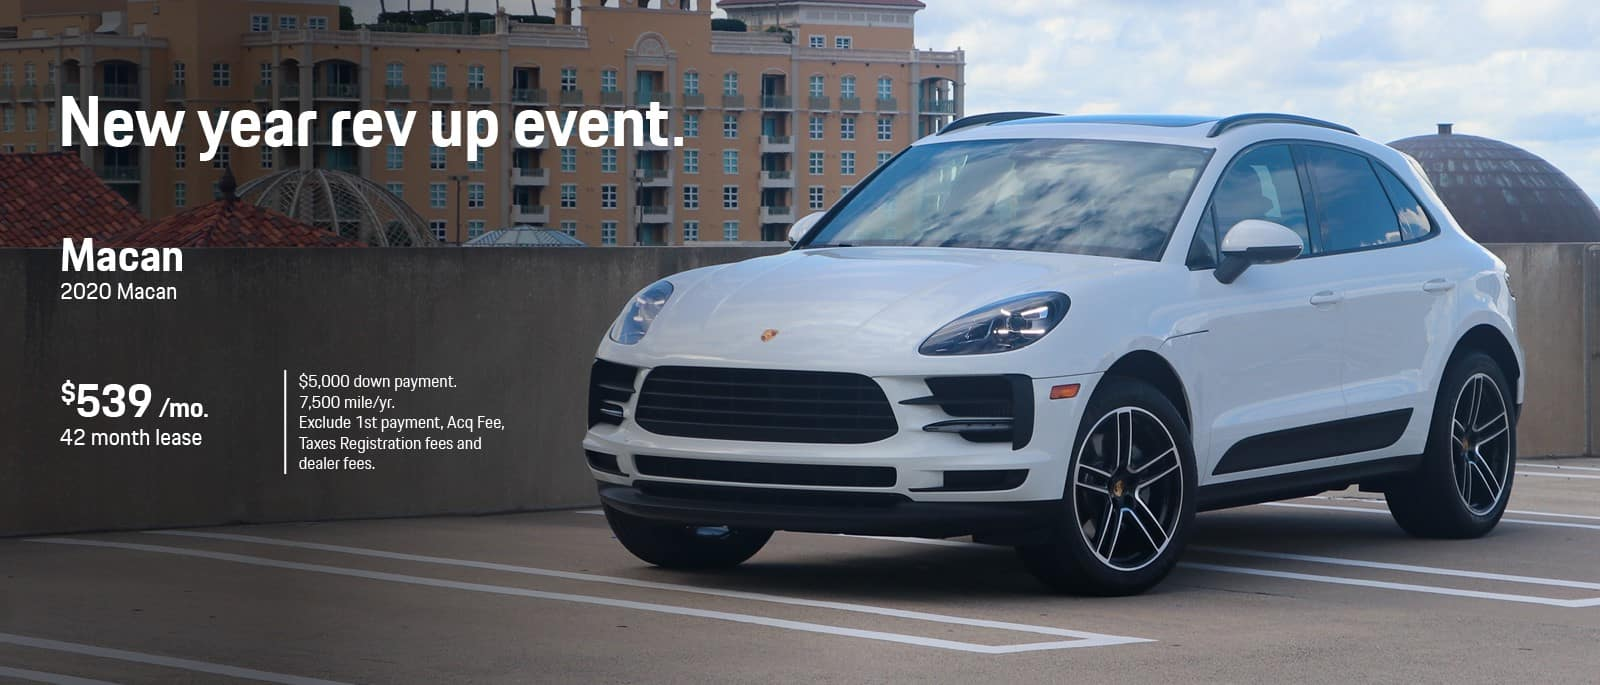 New Year Porsche Macan Lease Special